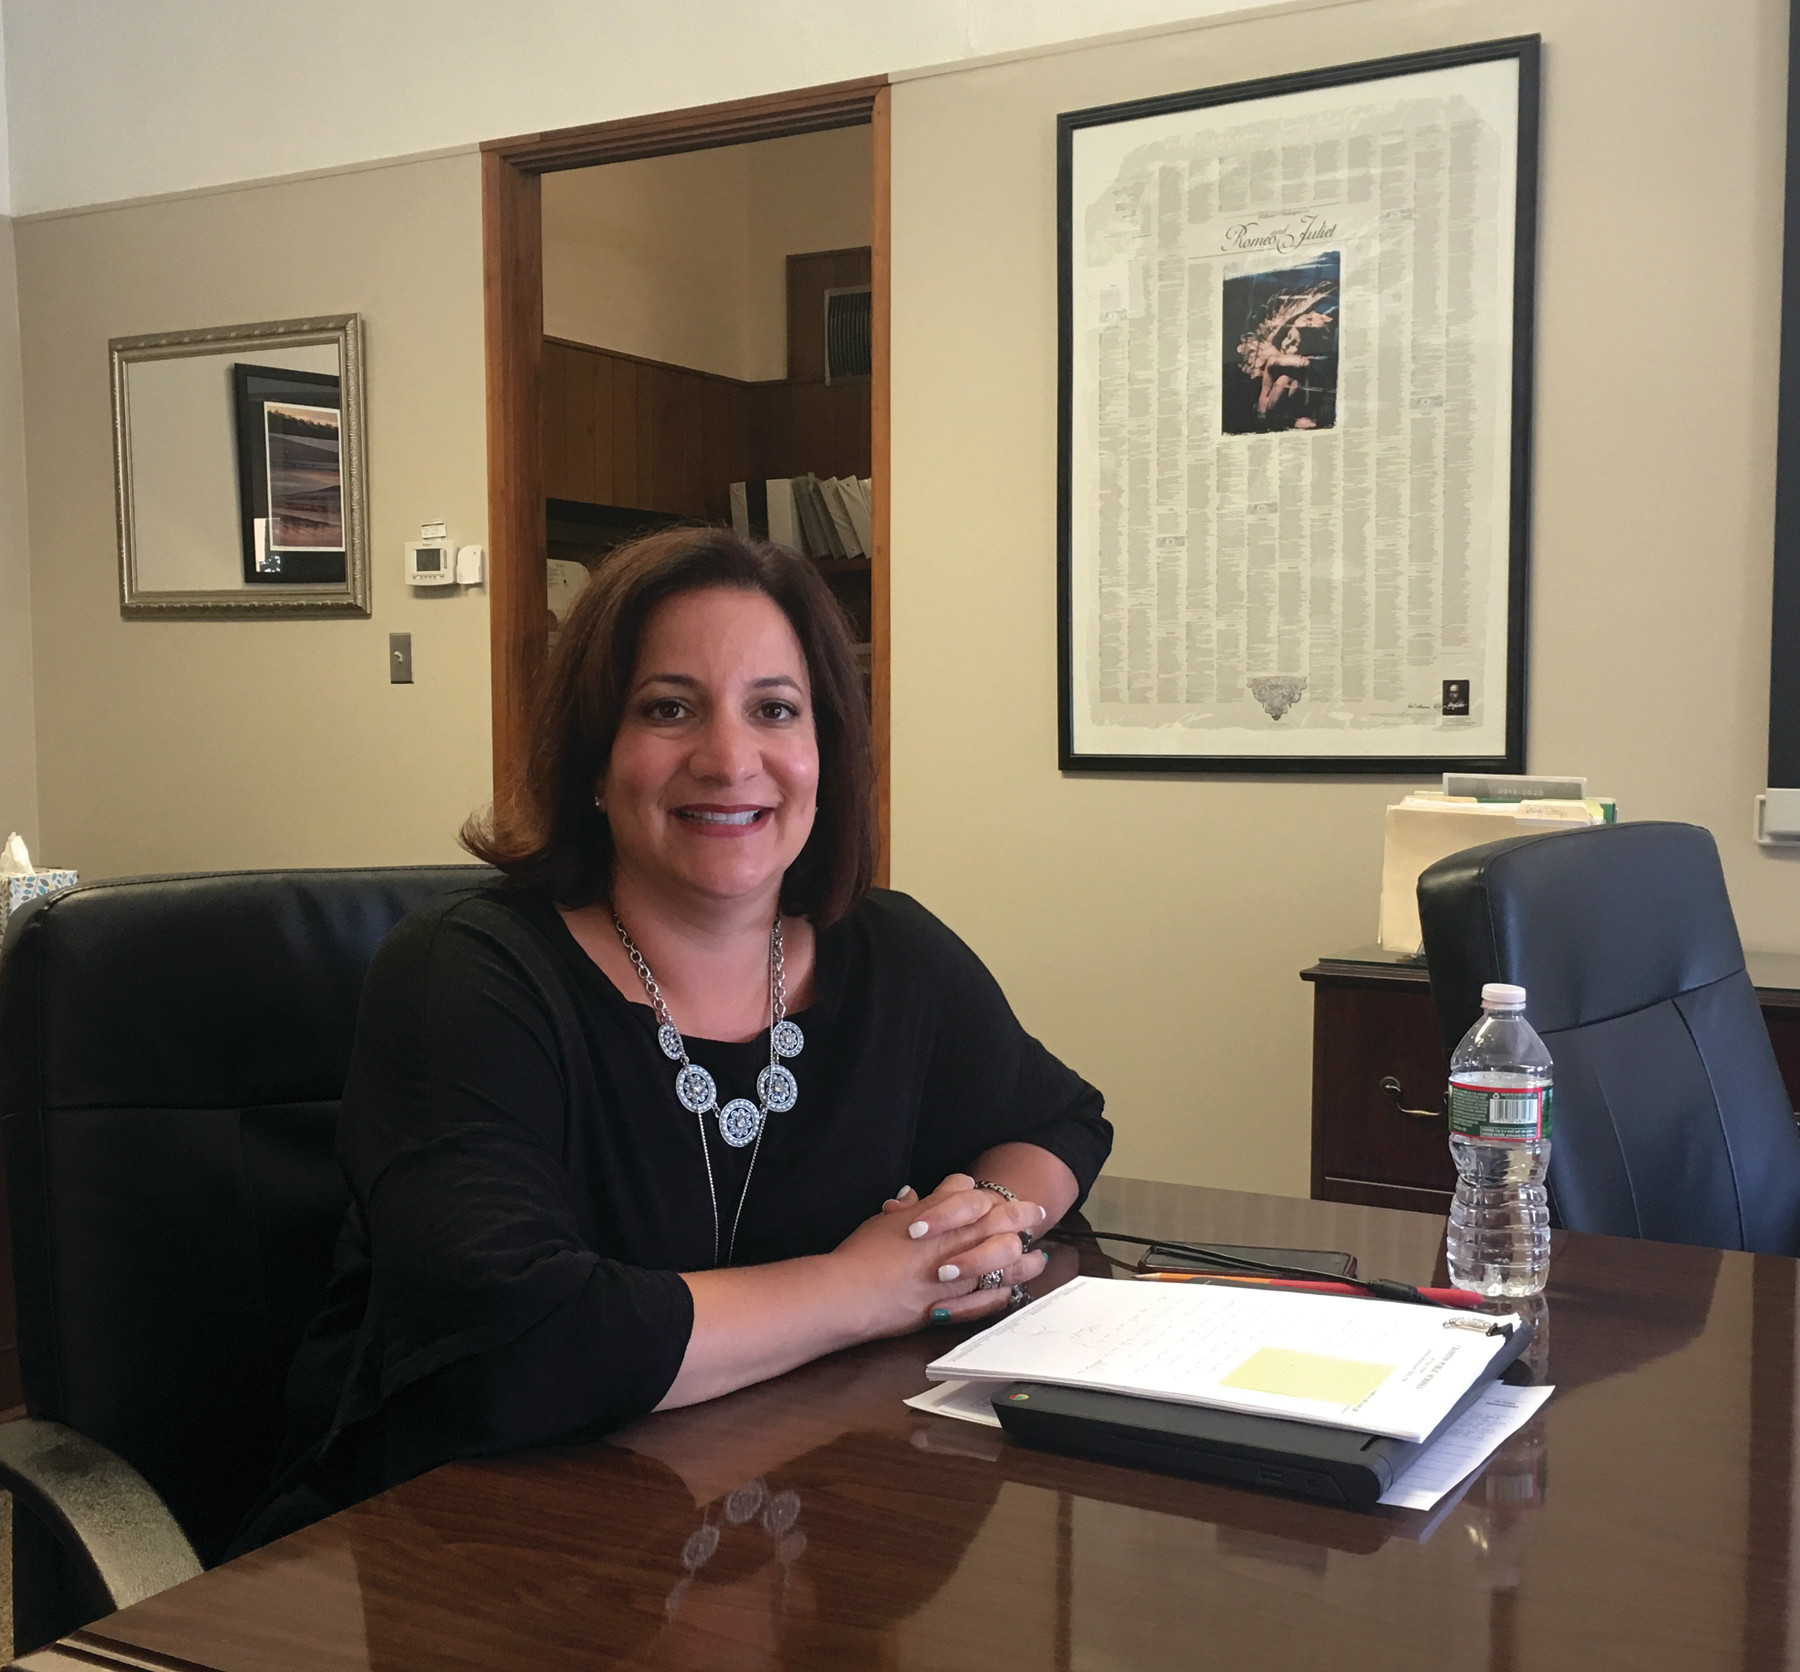 CLOSE TO HER ROOTS: Cranston Superintendent Jeannine Nota-Masse, a former English teacher, has a poster with the entirety of Romeo and Juliet on the wall in her office.